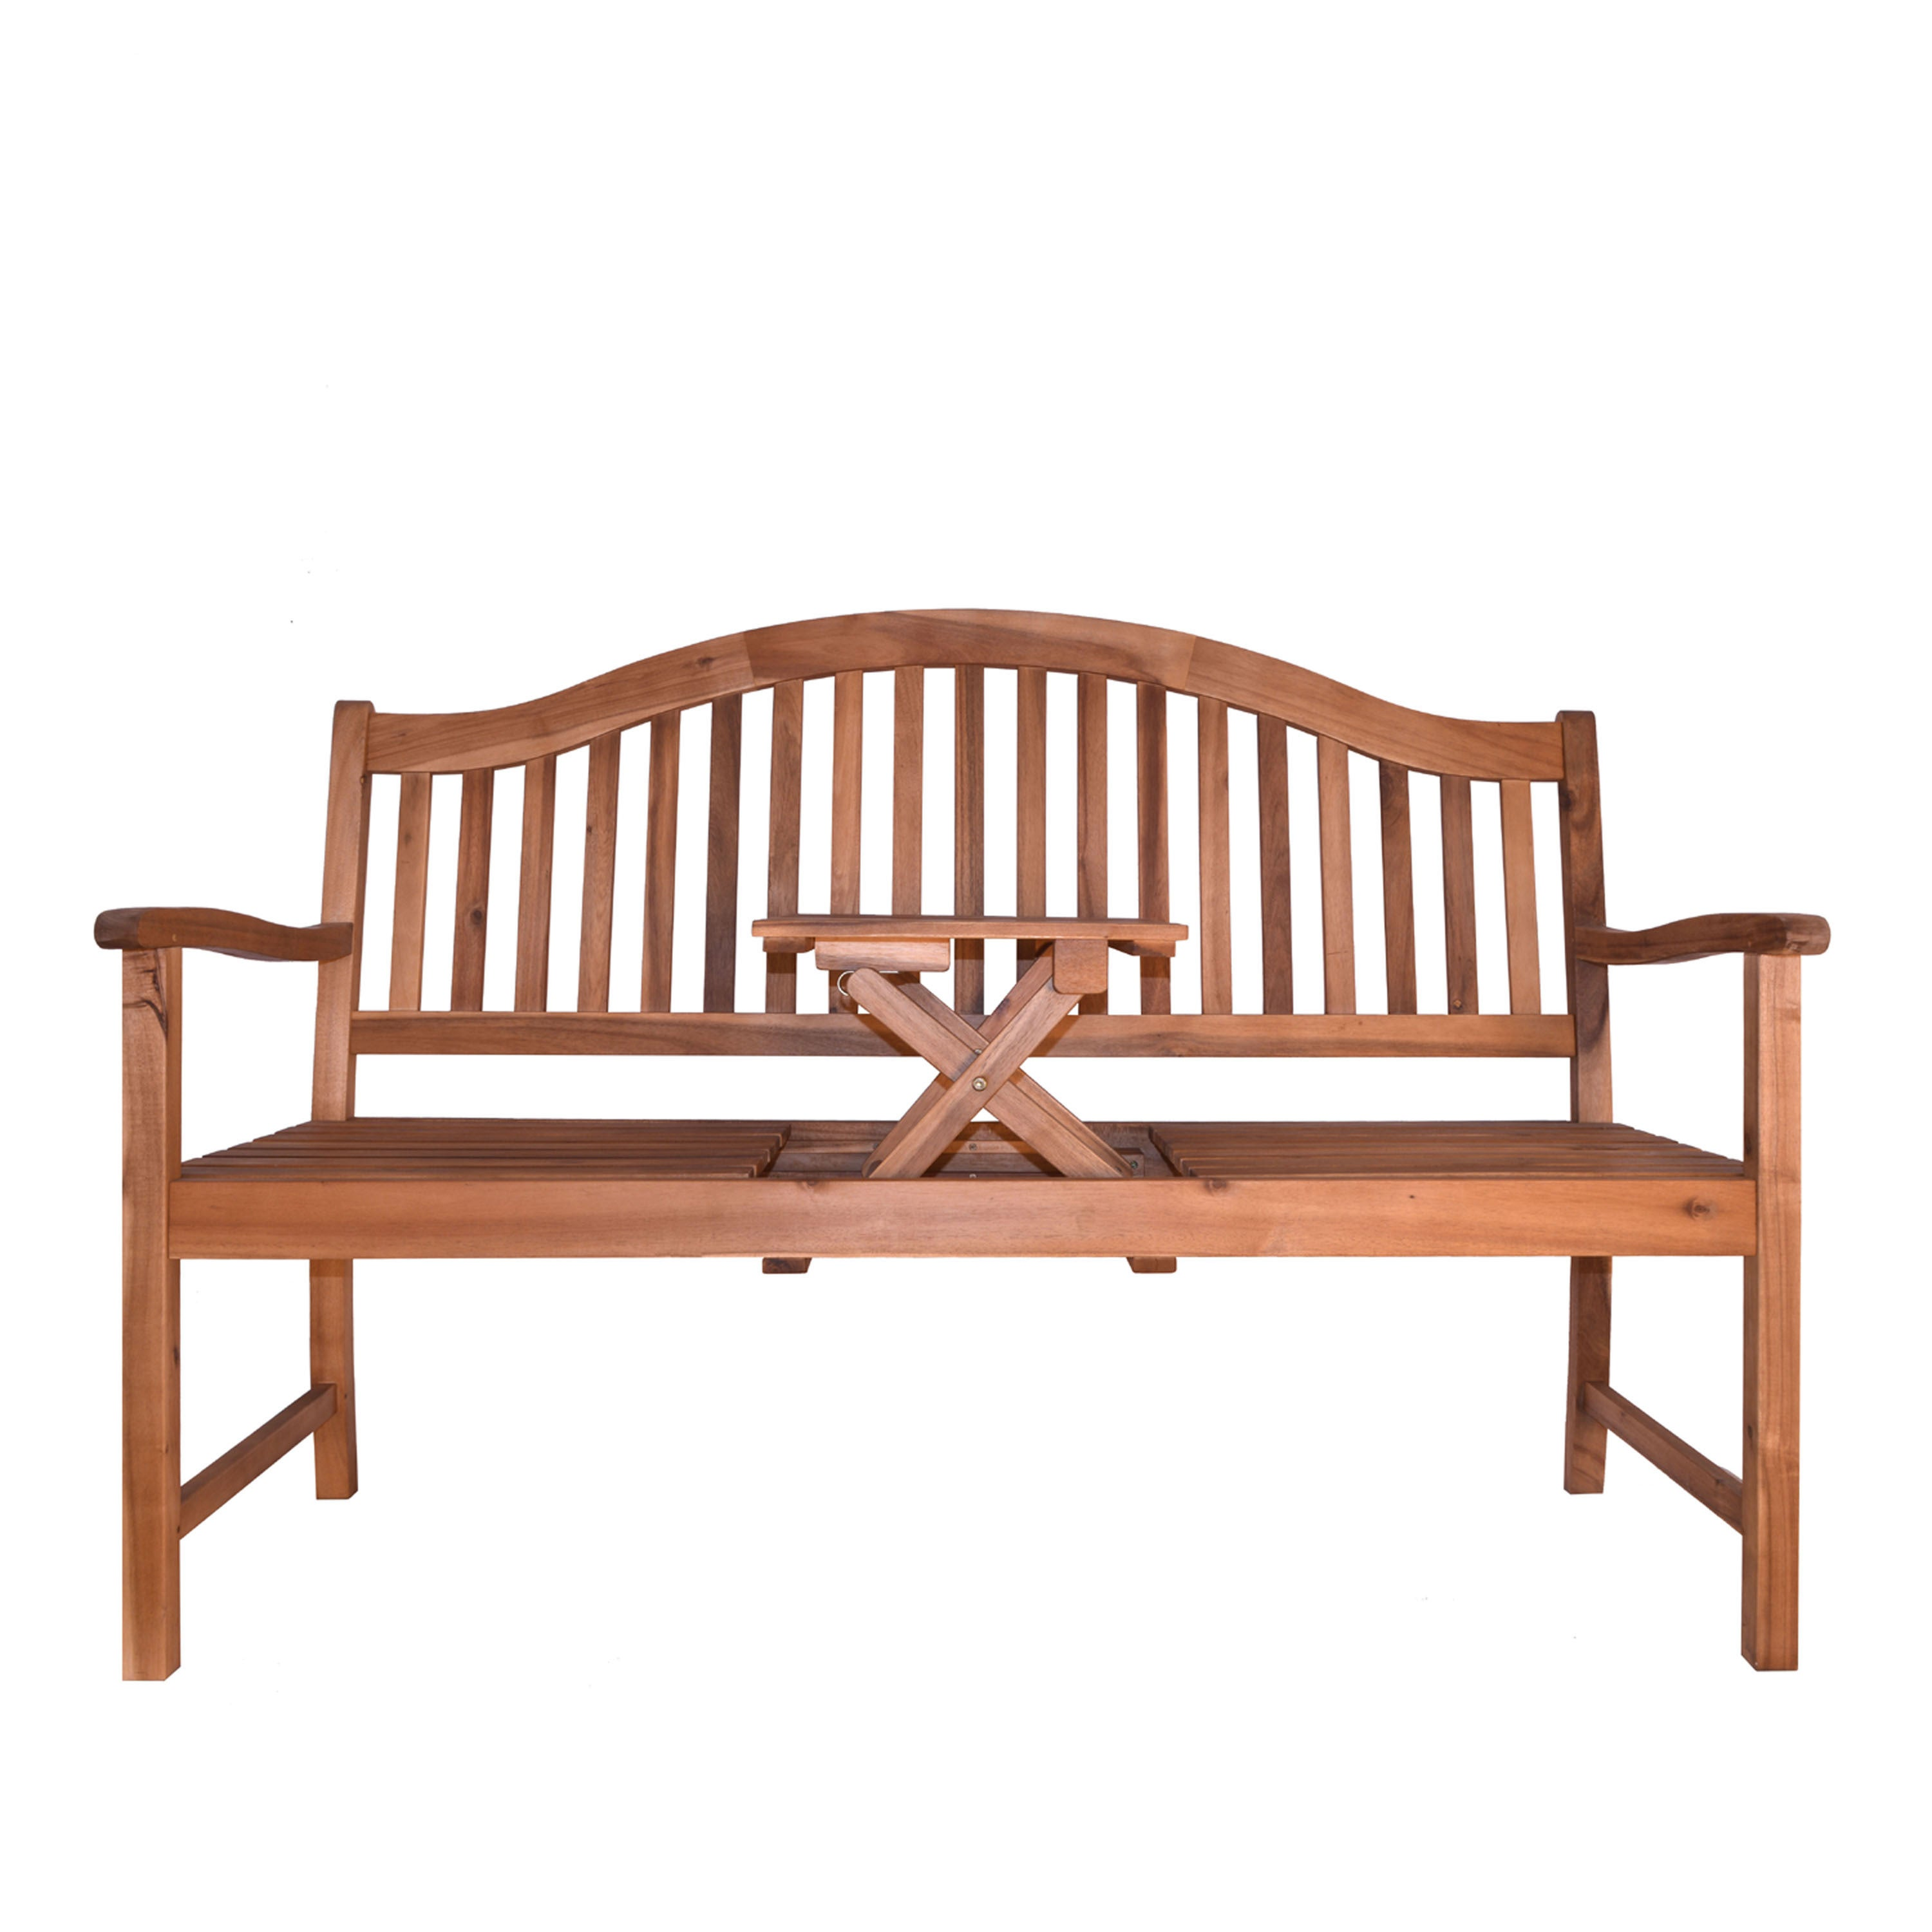 garden best rustic for rakuten wheel wagon product wooden bestchoiceproducts choice shop patio products outdoor bench brown